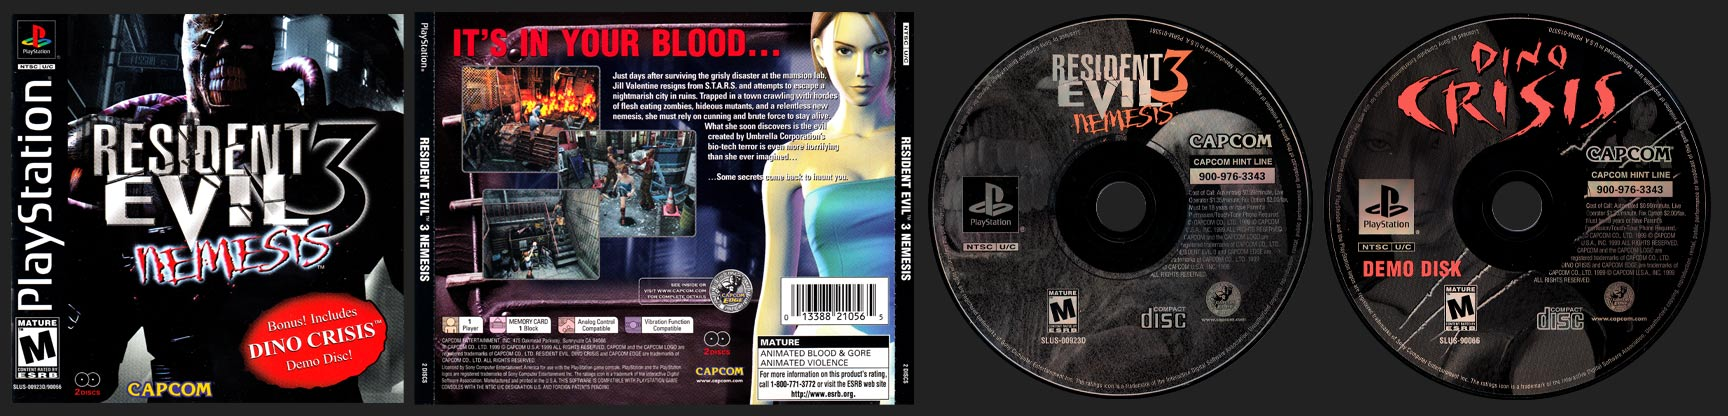 PSX PlayStation Resident Evil 3 Nemesis with Dino Crisis Demo Slim Double Jewel Case Black Label Release